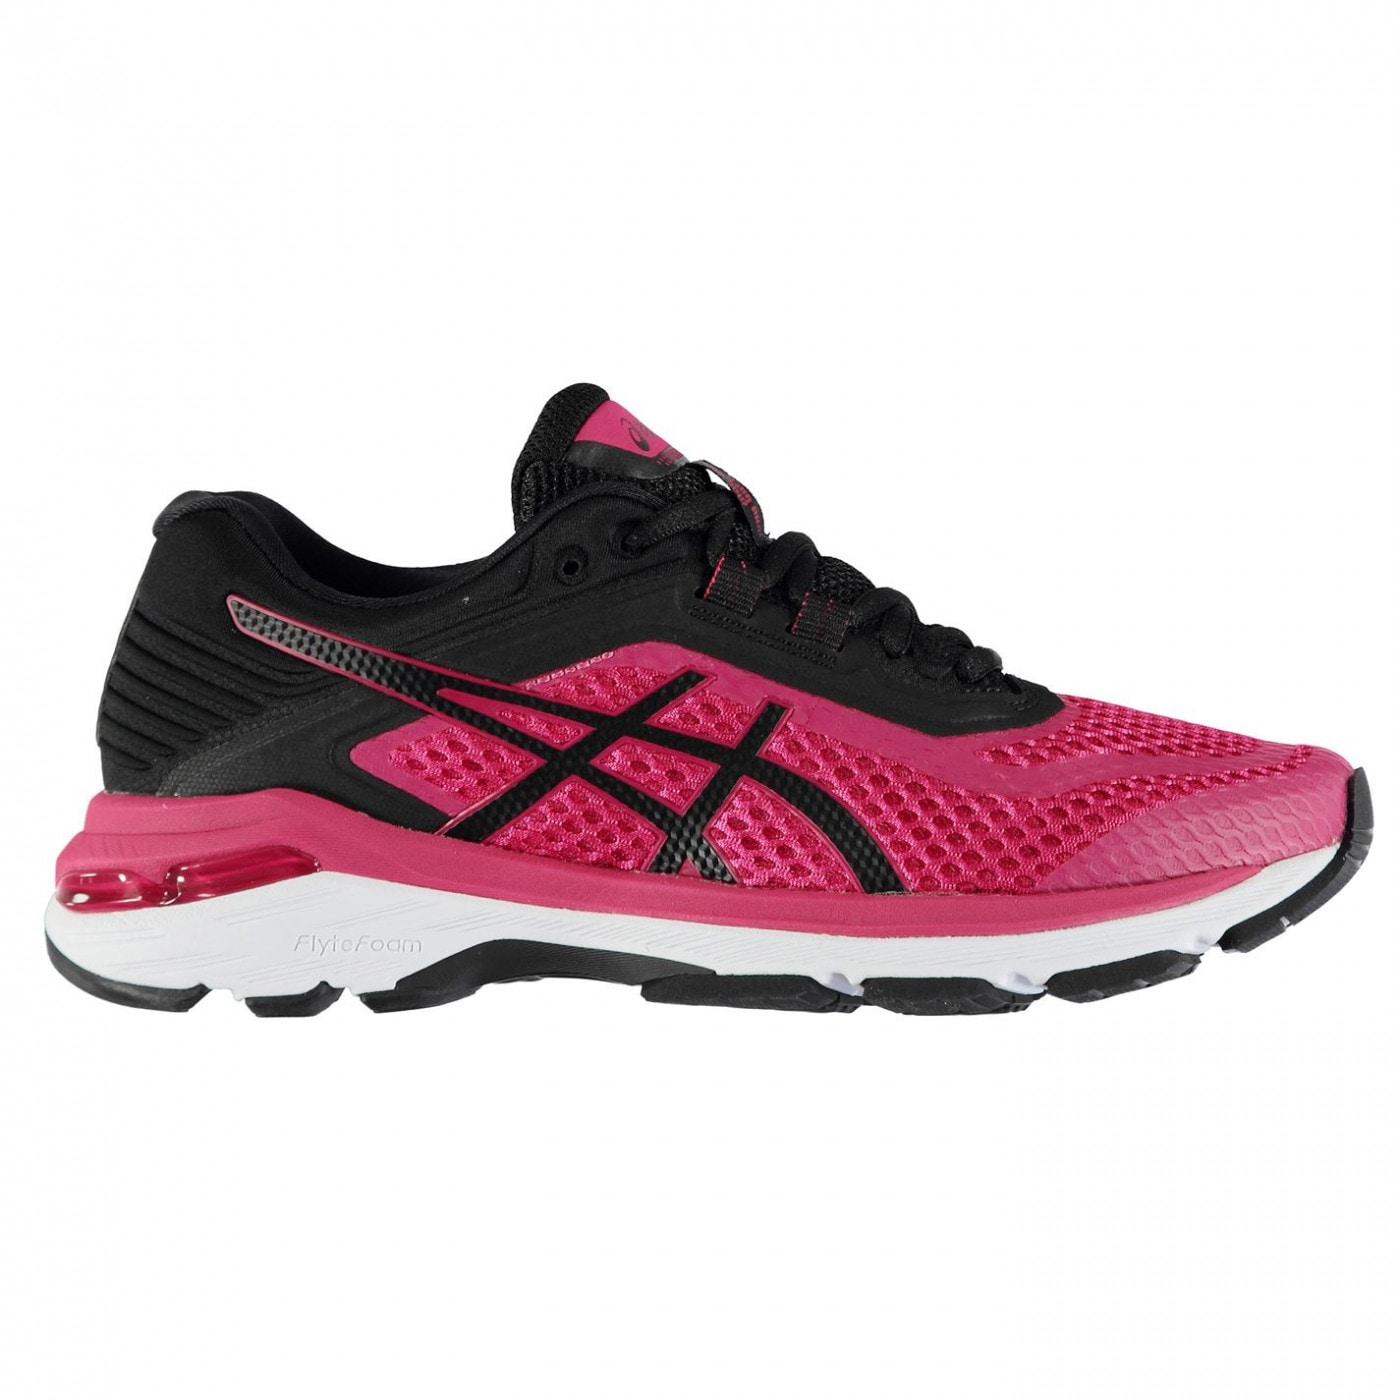 Asics GEL GT 2000 v6 Ladies Running Shoes - FACTCOOL